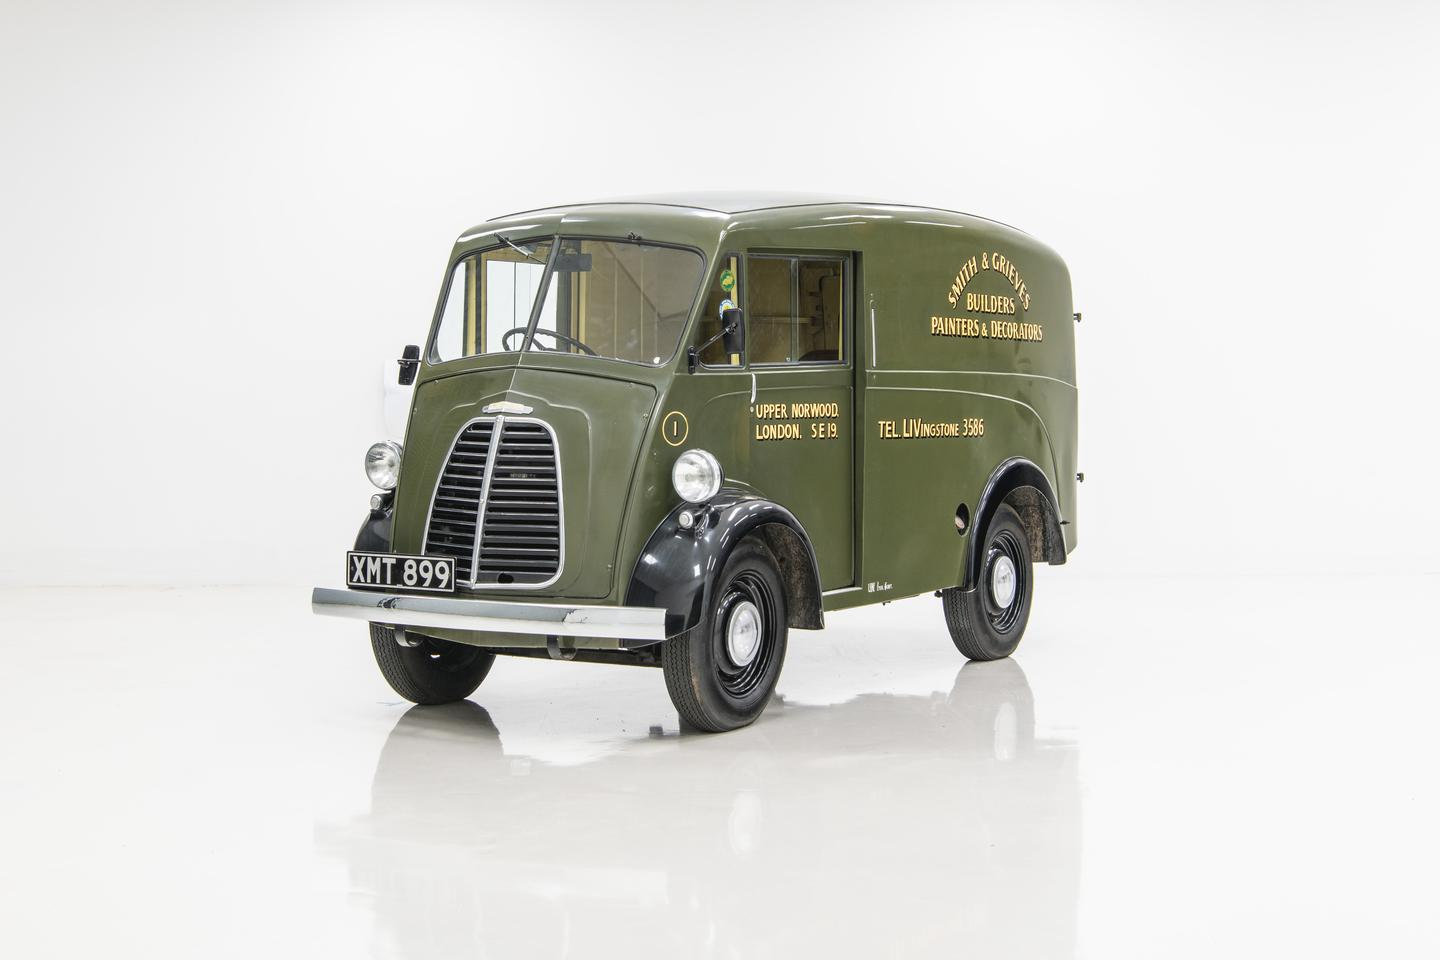 The original Morris J-type inspired the all-new JE electric van from the recently-revived Morris Commercial